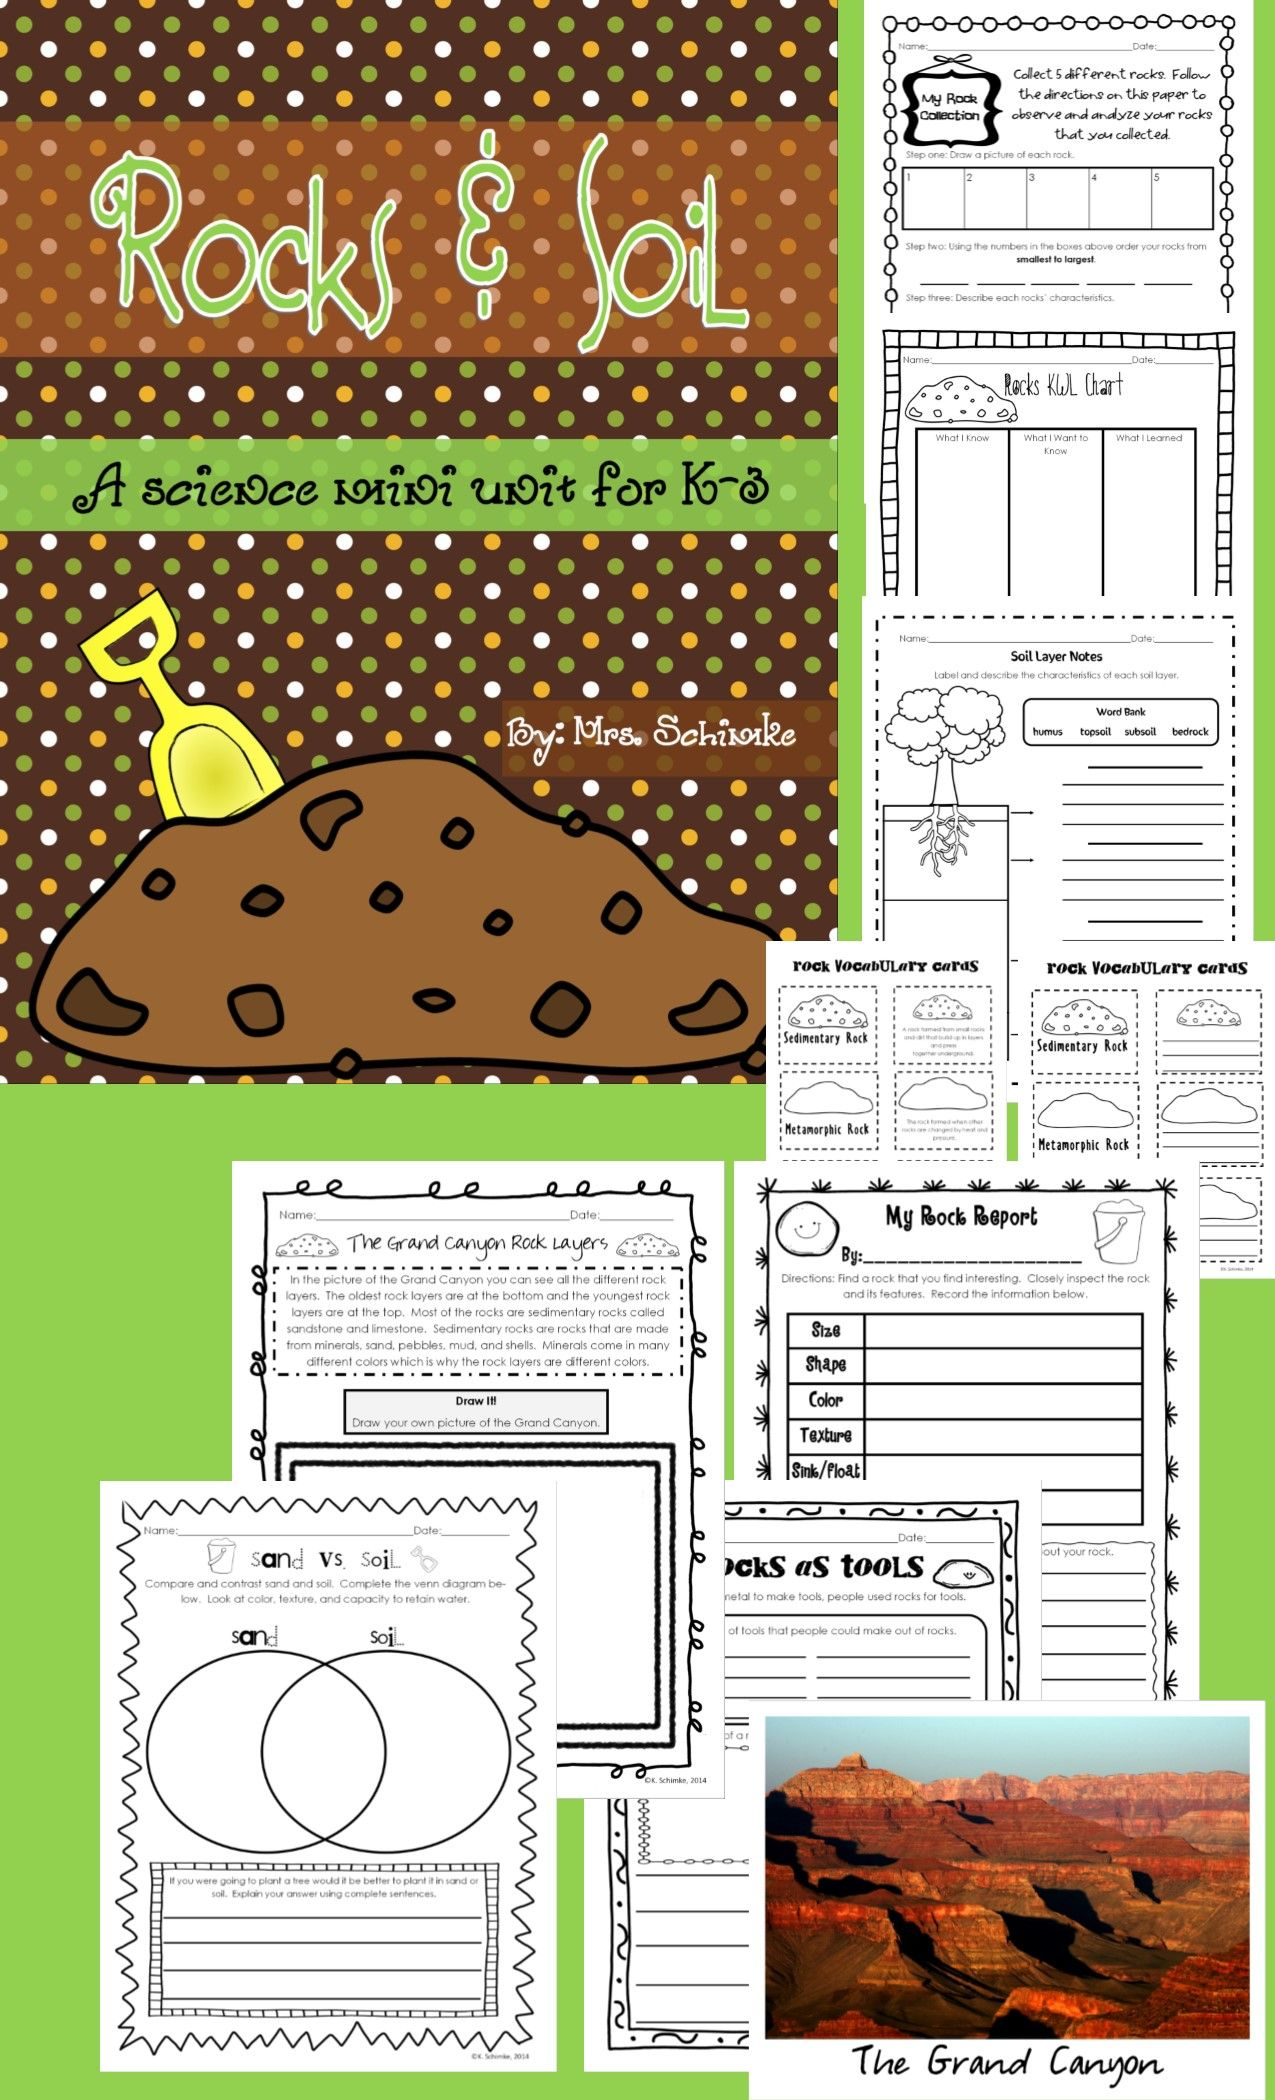 Rocks And Soil Science Mini Unit For K 3 First Grade Inspiration